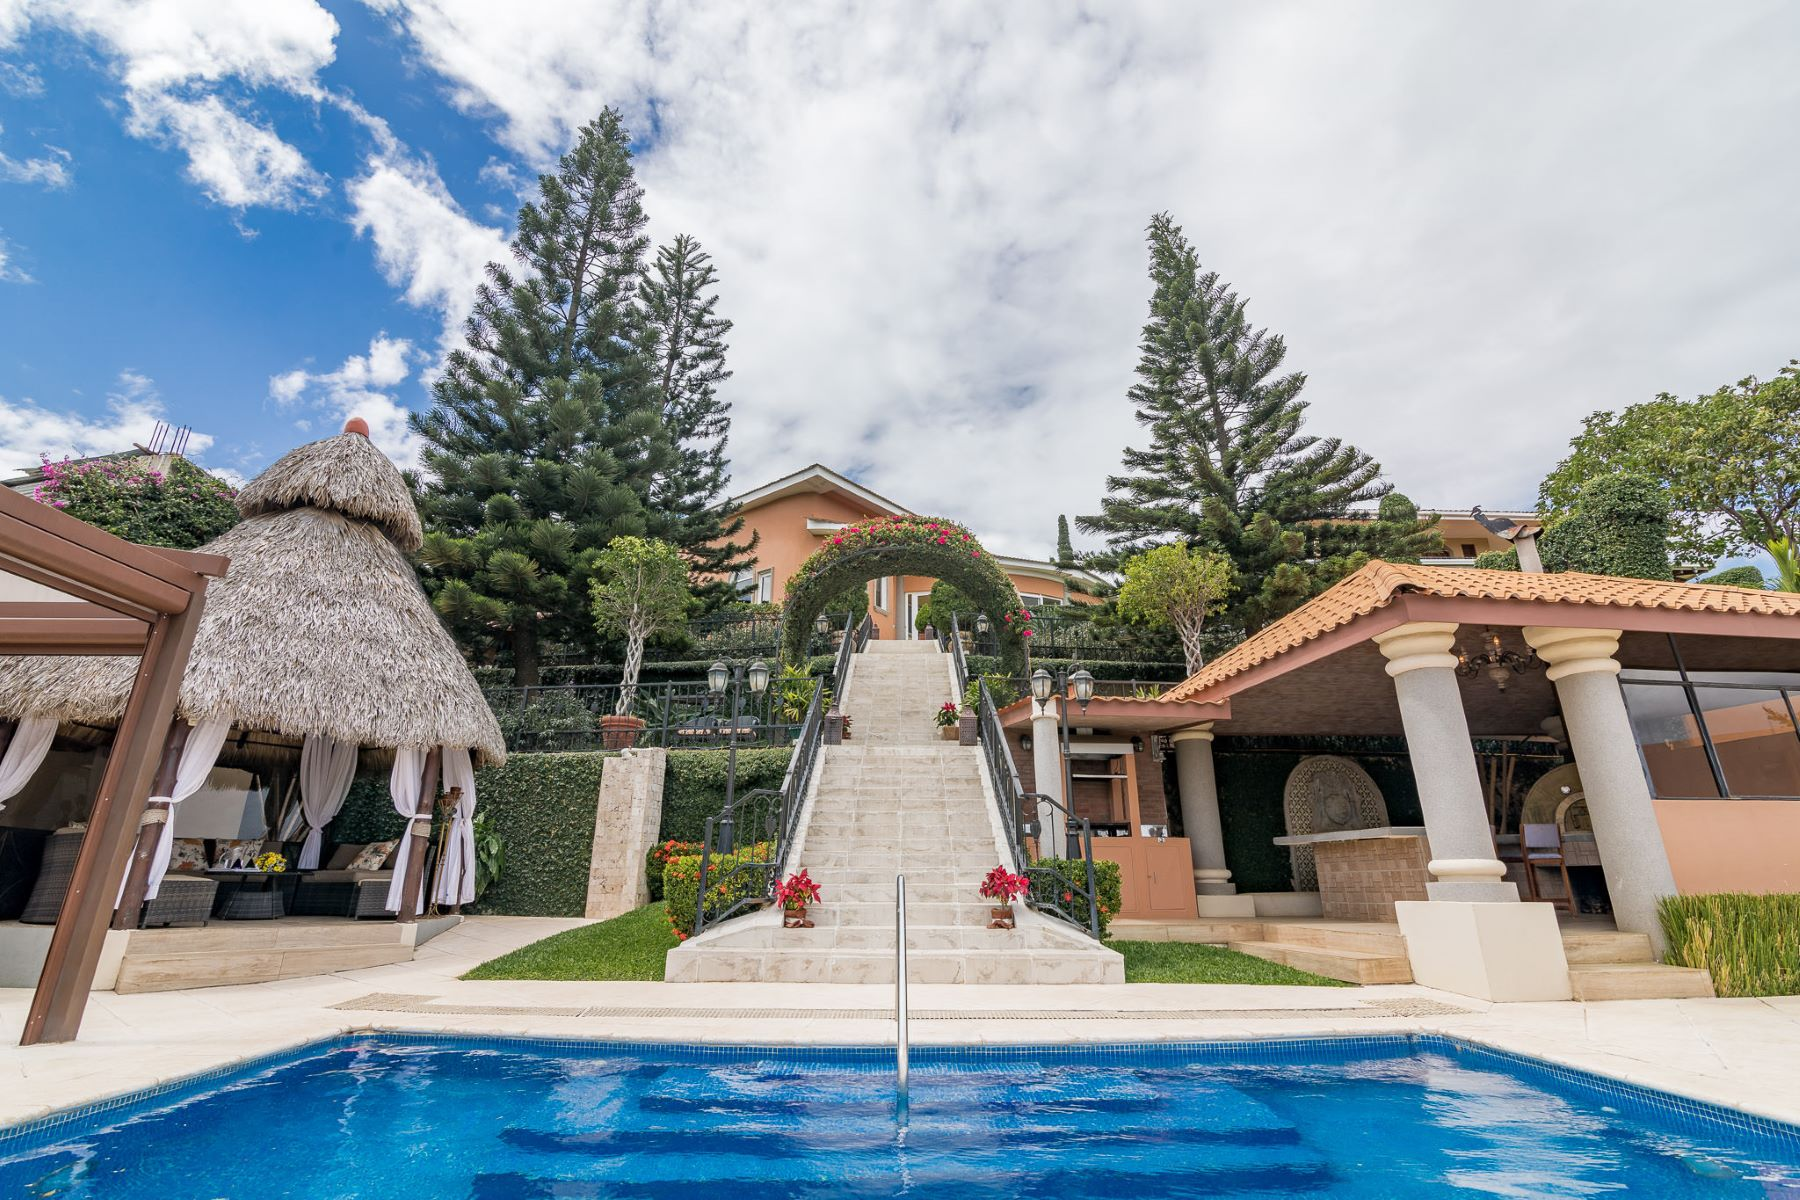 Single Family Home for Sale at Italian Style Villa Santori with breathtaking views Villa Santori Residencial Valle de Luna, Managua, Managua, 00000 Nicaragua